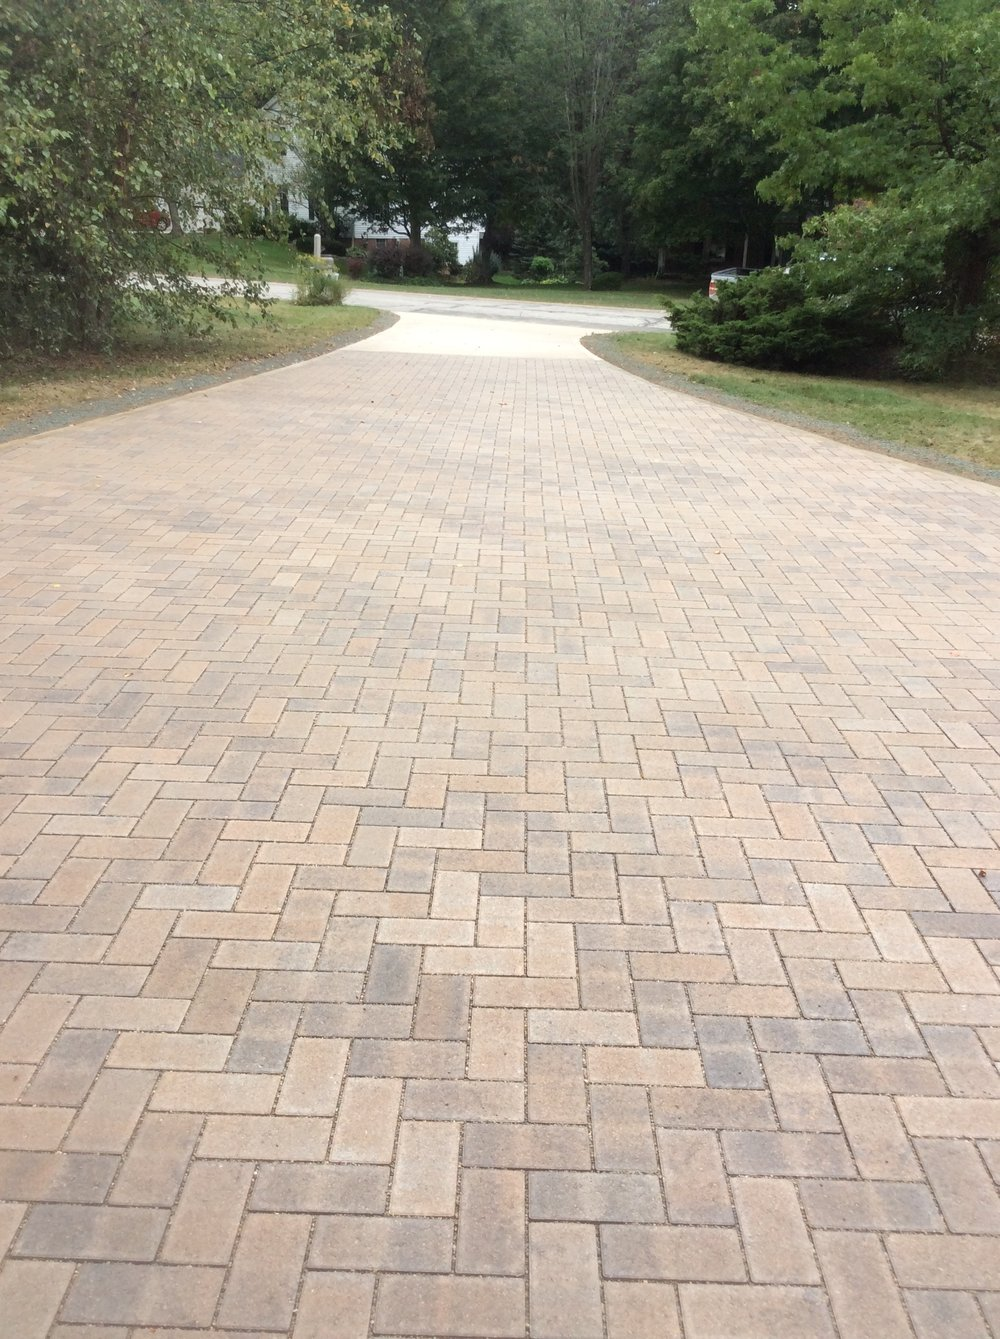 Unilock landscaping companies, driveways and patio pavers in Hudson, OH